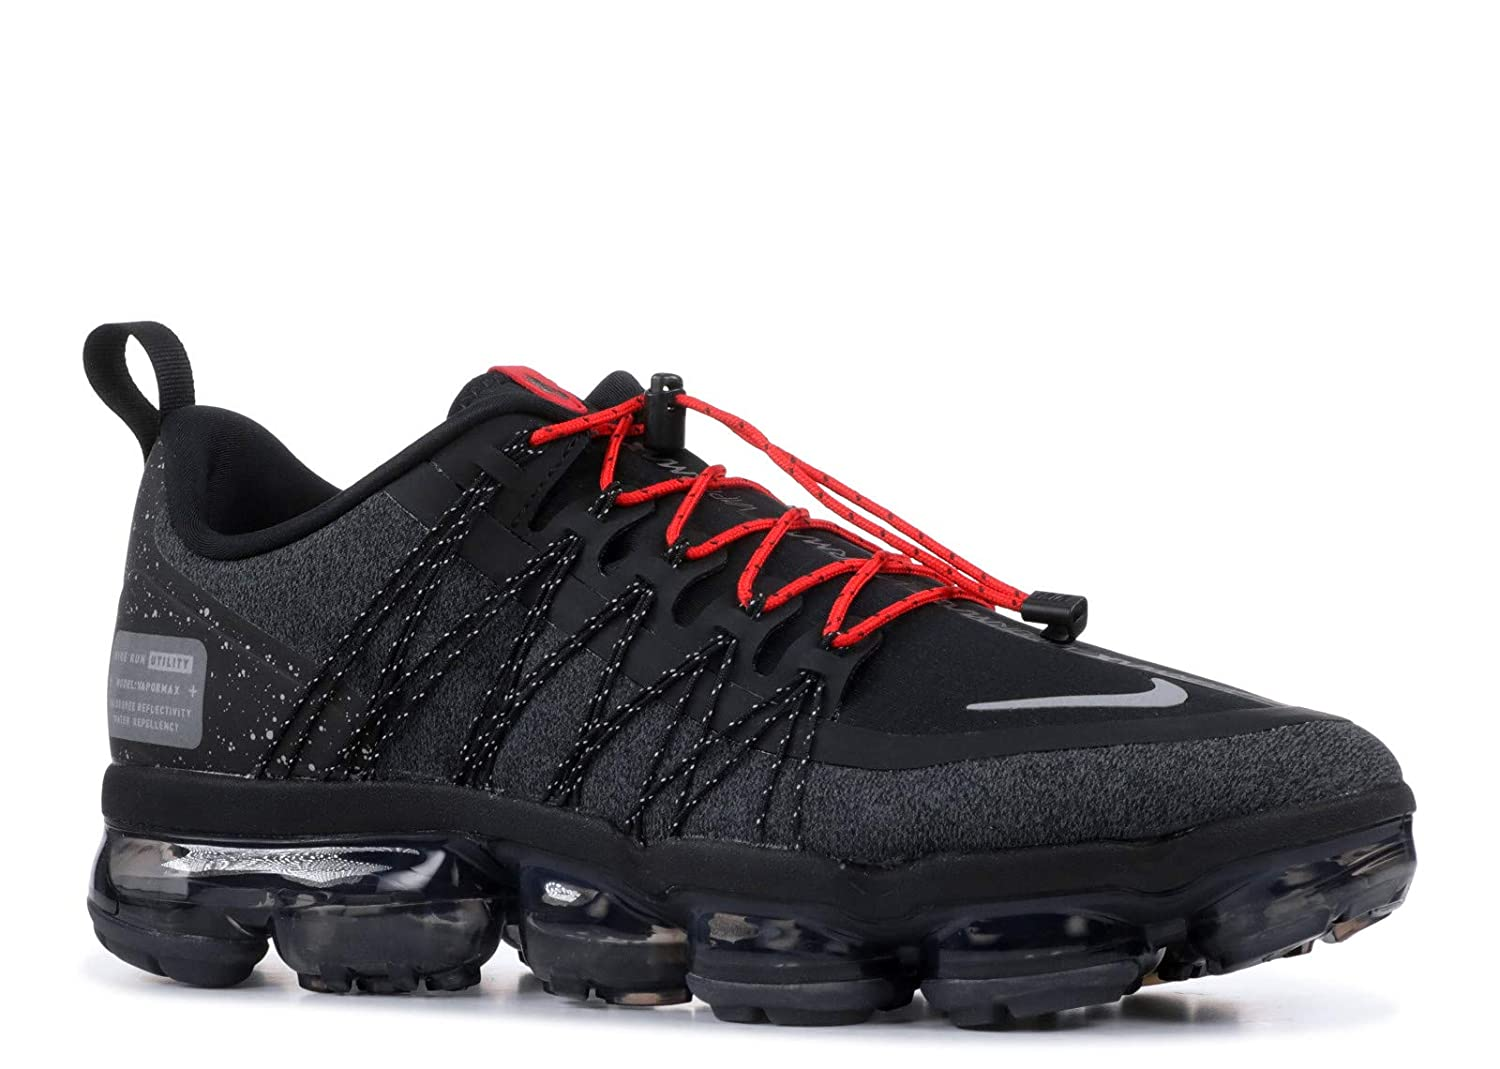 huge selection of 1285a 56dca Amazon.com  Nike Mens Air Vapormax Running Shoes  Shoes